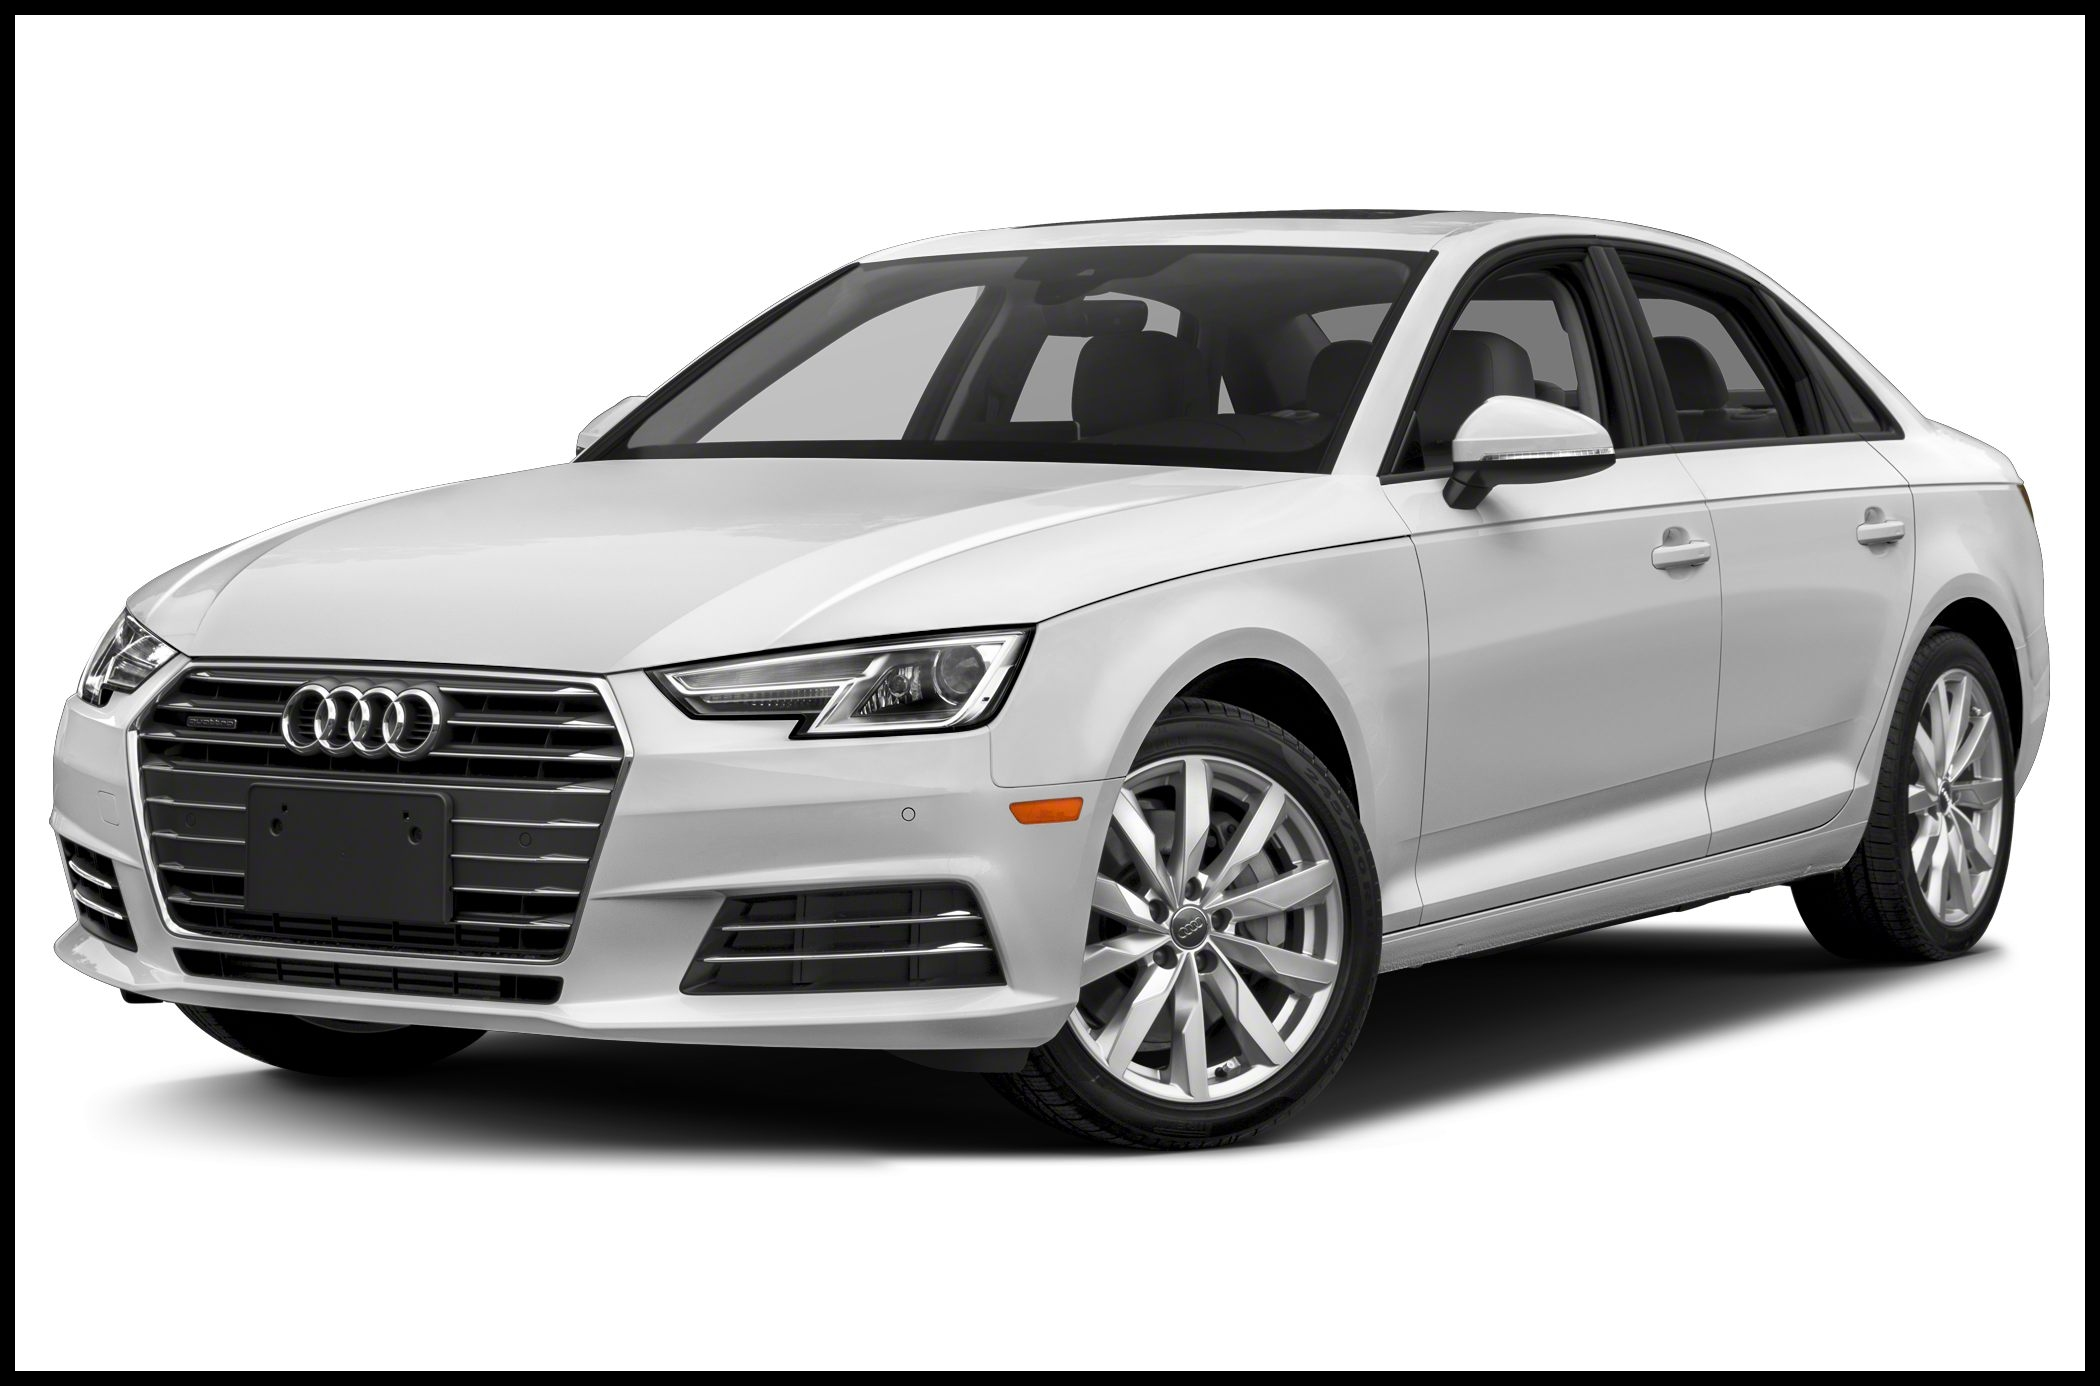 2017 Audi A4 2 0T Season of Audi ultra Premium 4dr Front wheel Drive Sedan Pricing and Options